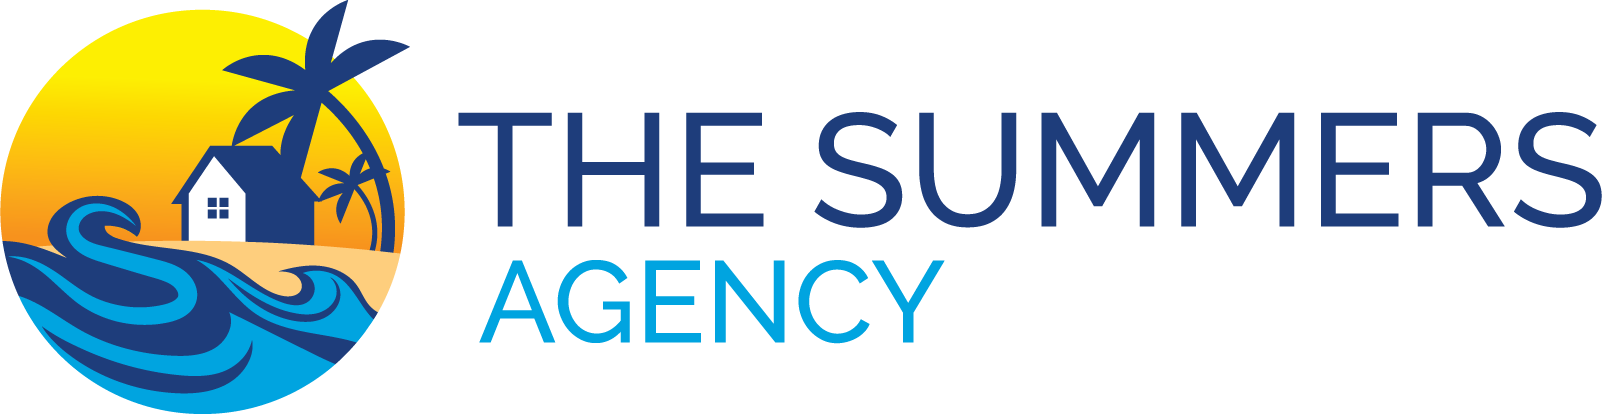 The Summers Agency